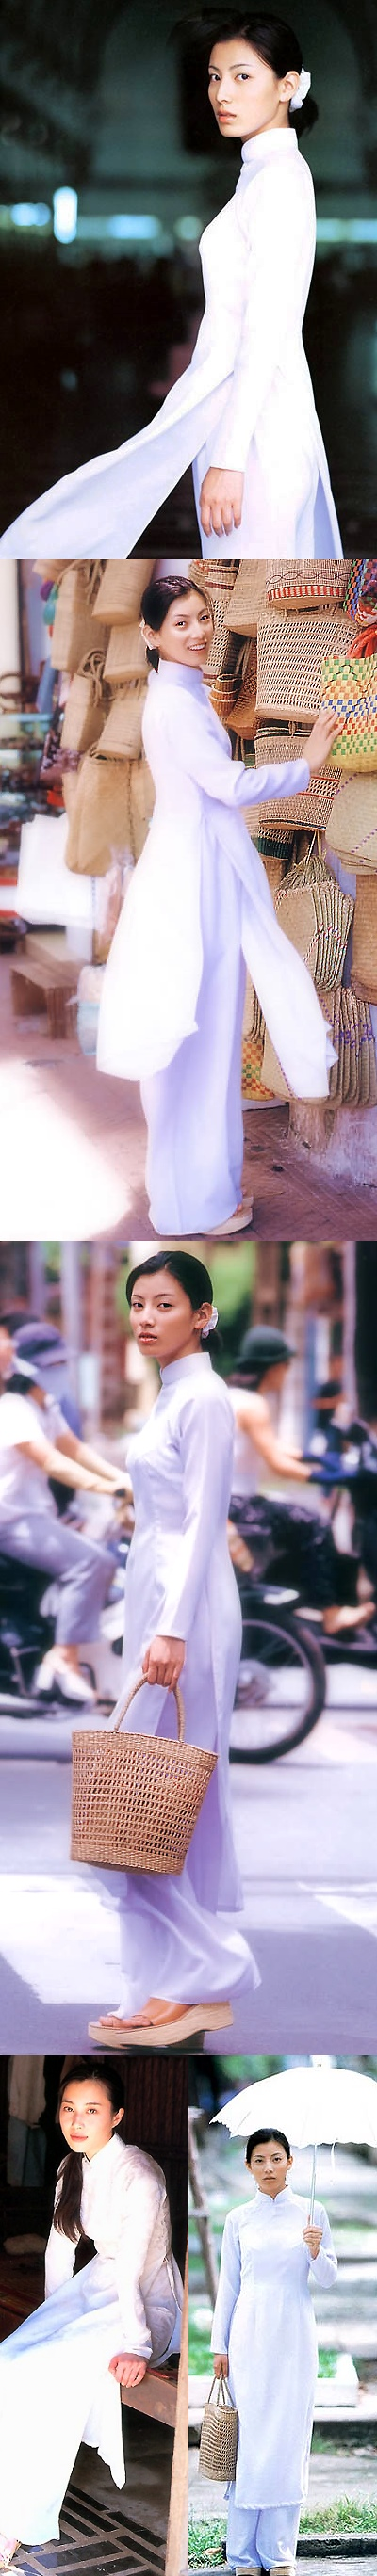 Vietnamese National Outfit - Aodai (CM)